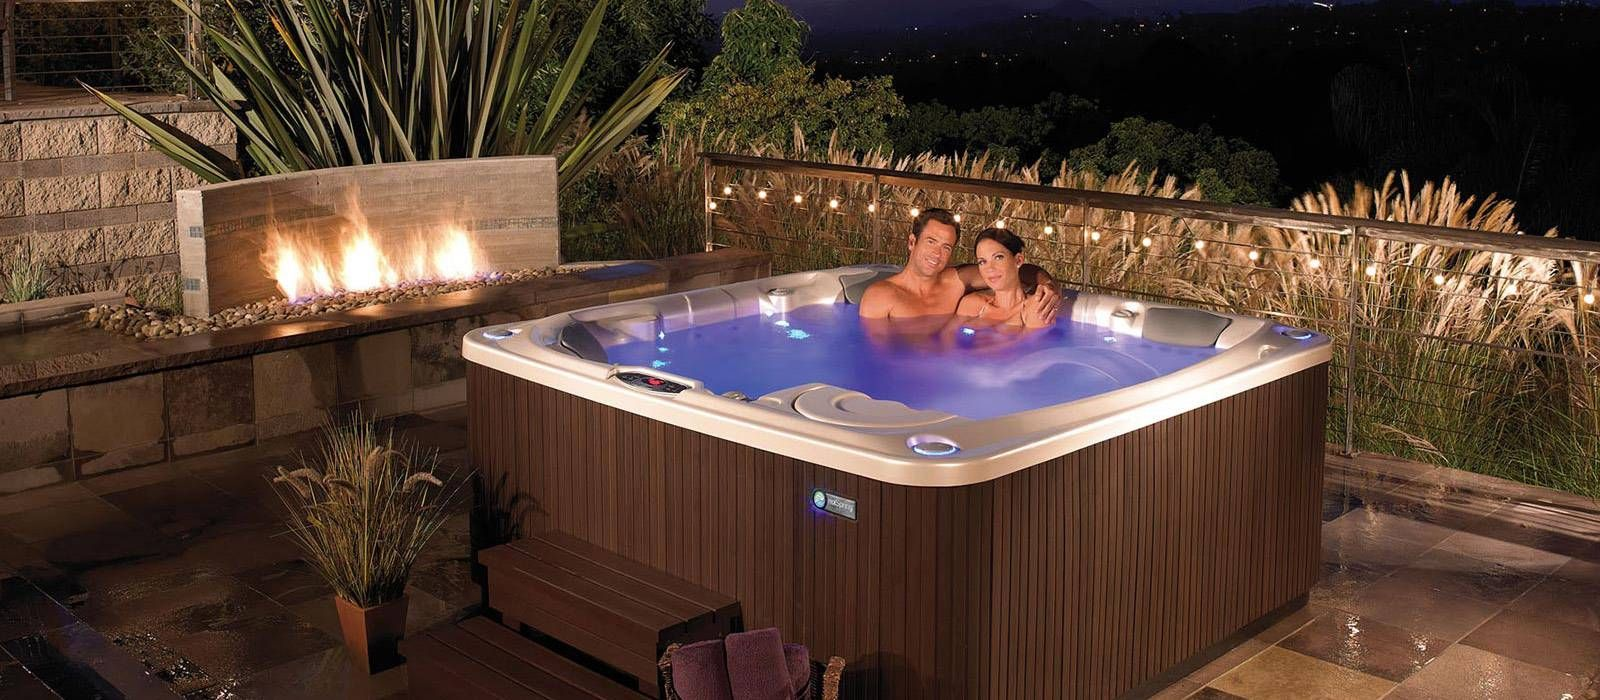 hot tub pictures backyard hot tub backyard design arbors pinterest backyard hot tubs. Black Bedroom Furniture Sets. Home Design Ideas